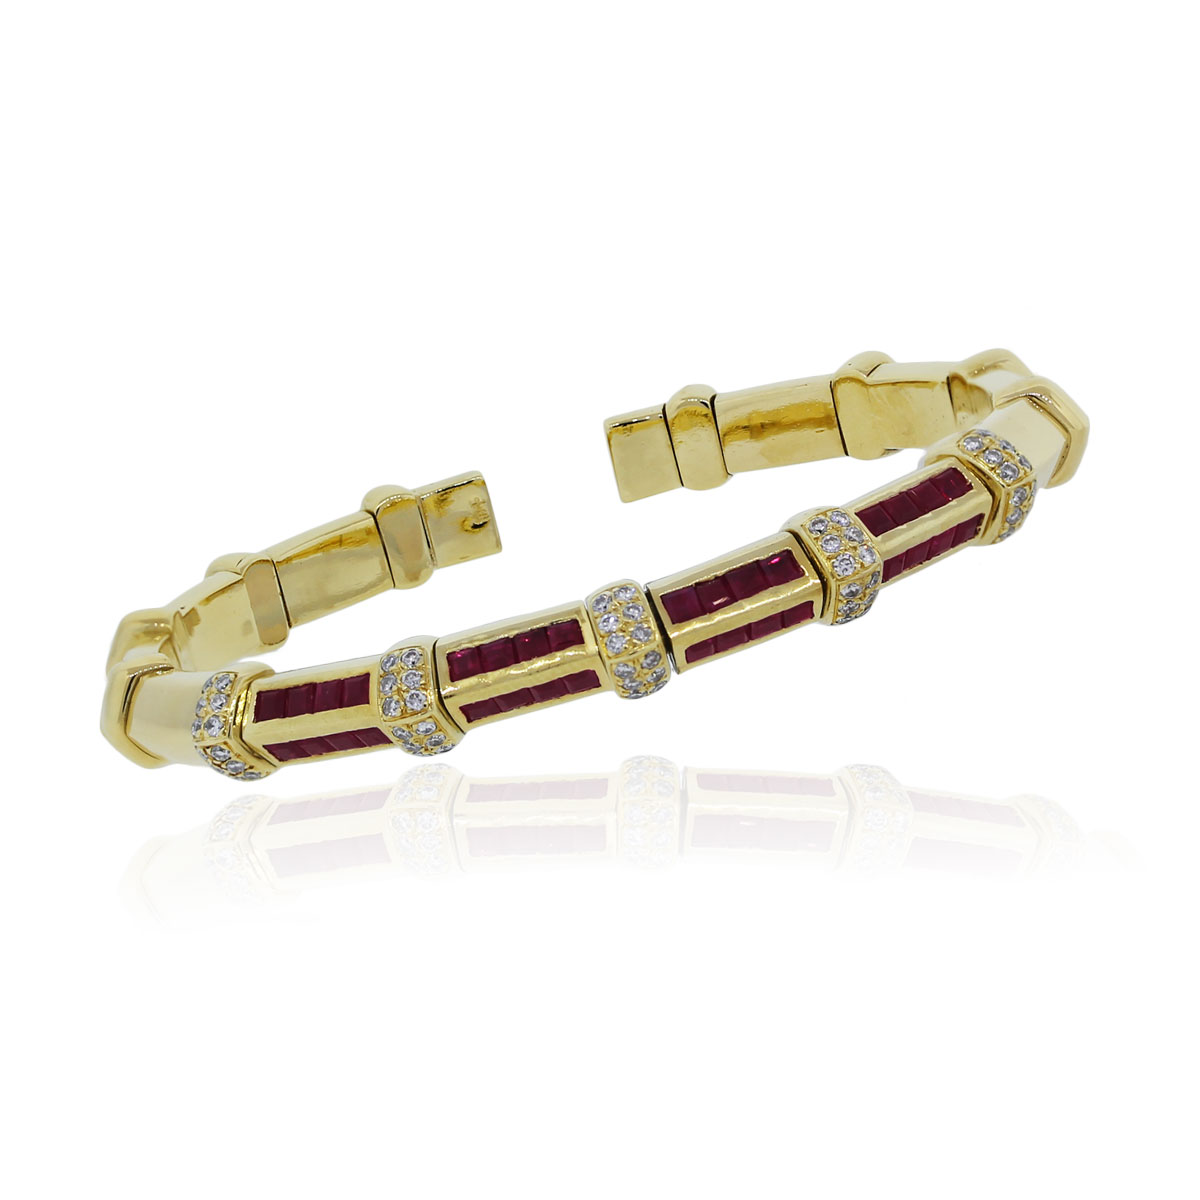 You are viewing this 18k Yellow Gold Diamond Princess Cut Ruby Bangle Bracelet!